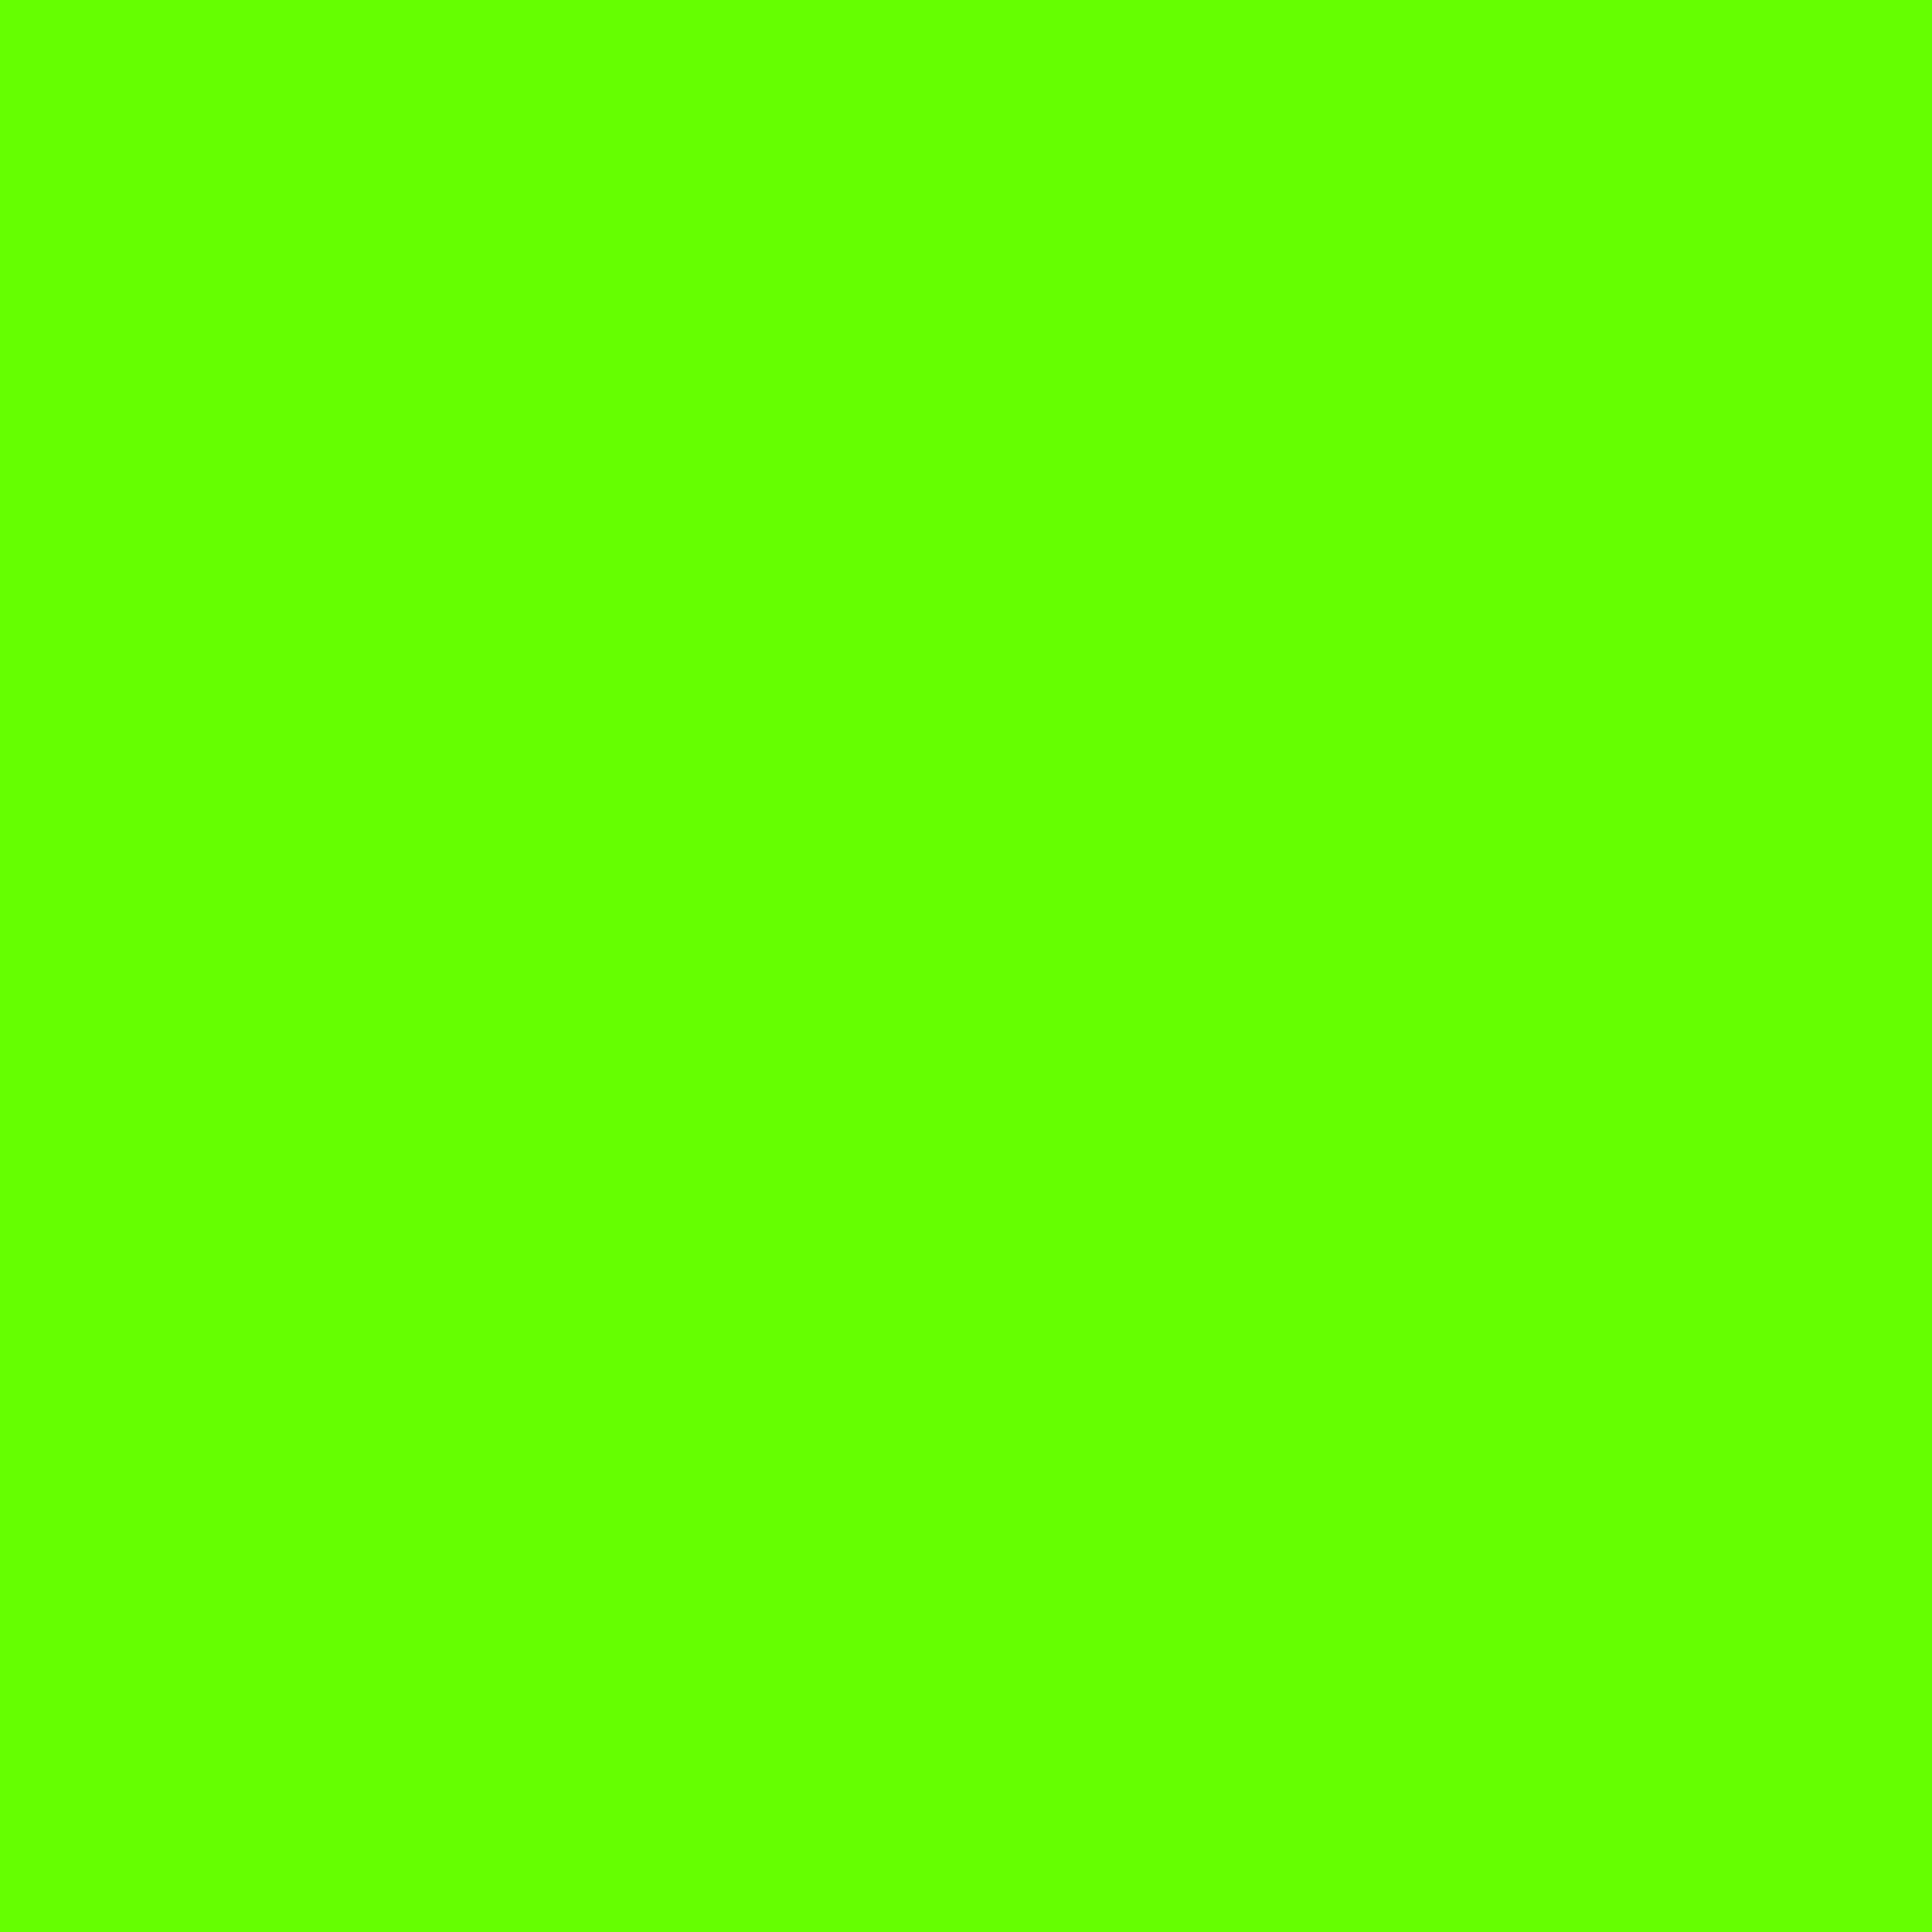 2048x2048 Bright Green Solid Color Background